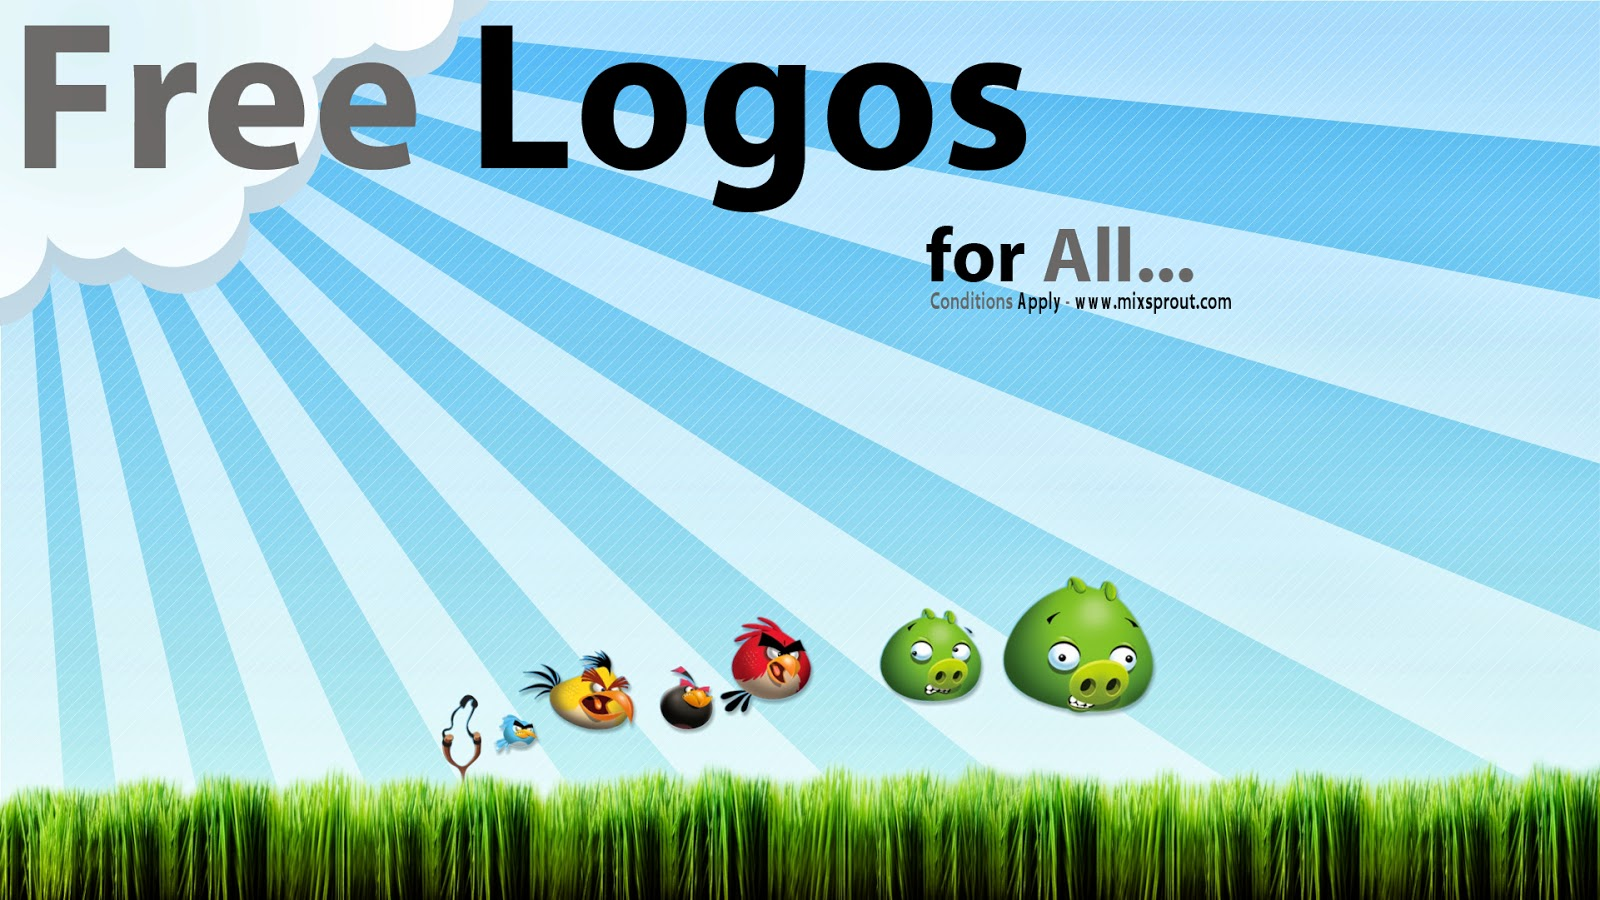 We Are Giving Free Logos Worth 15$-20$ here at Mixsprout, Visit Us at www.mixsprout.com